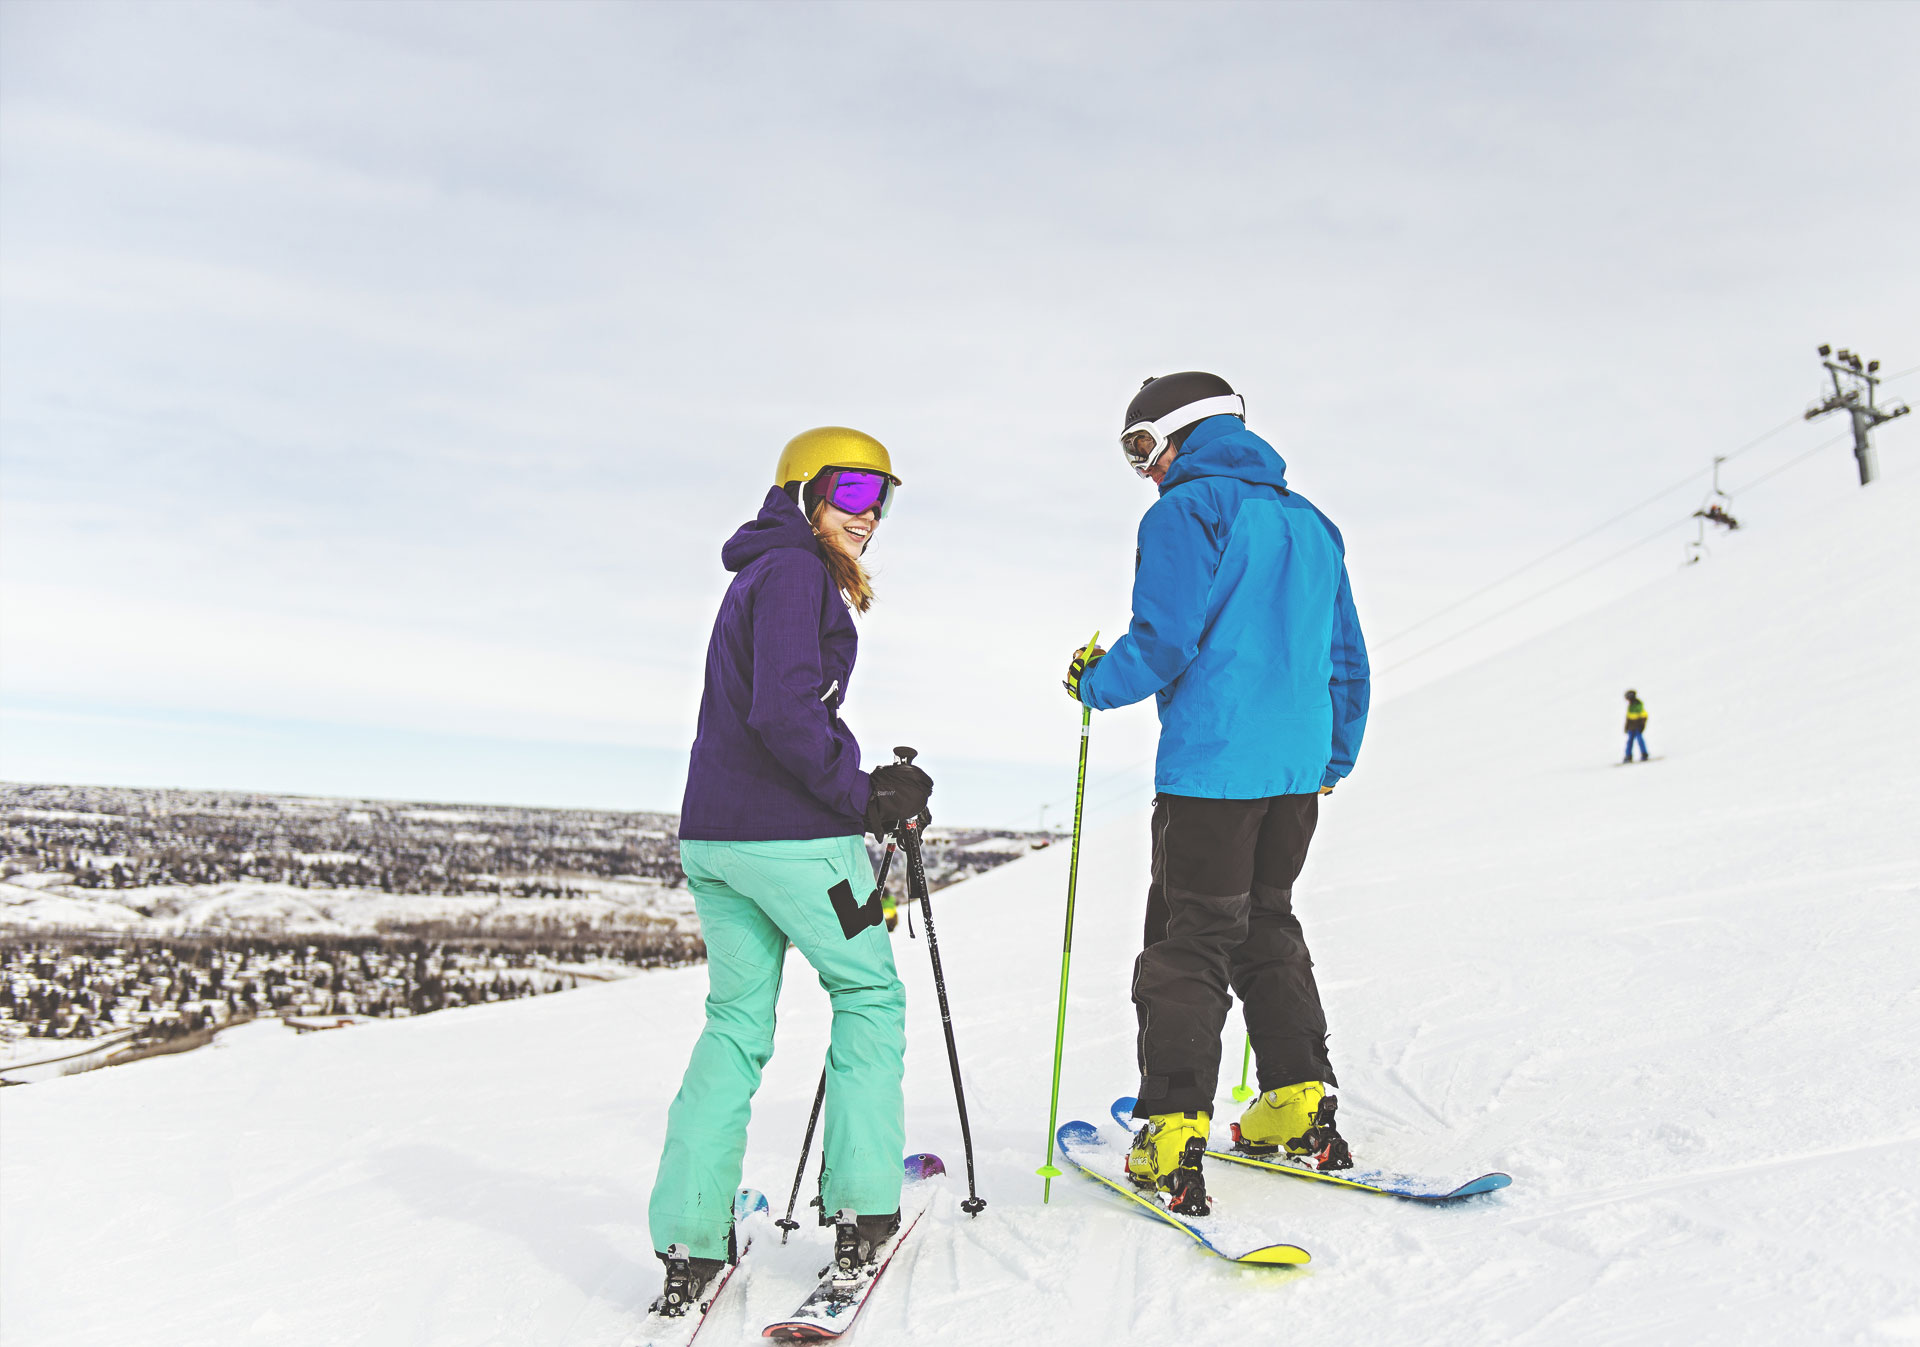 Try Skiing Or Snowboarding At Winsport In Calgary Photo Credit Travel Alberta A V Wakefield